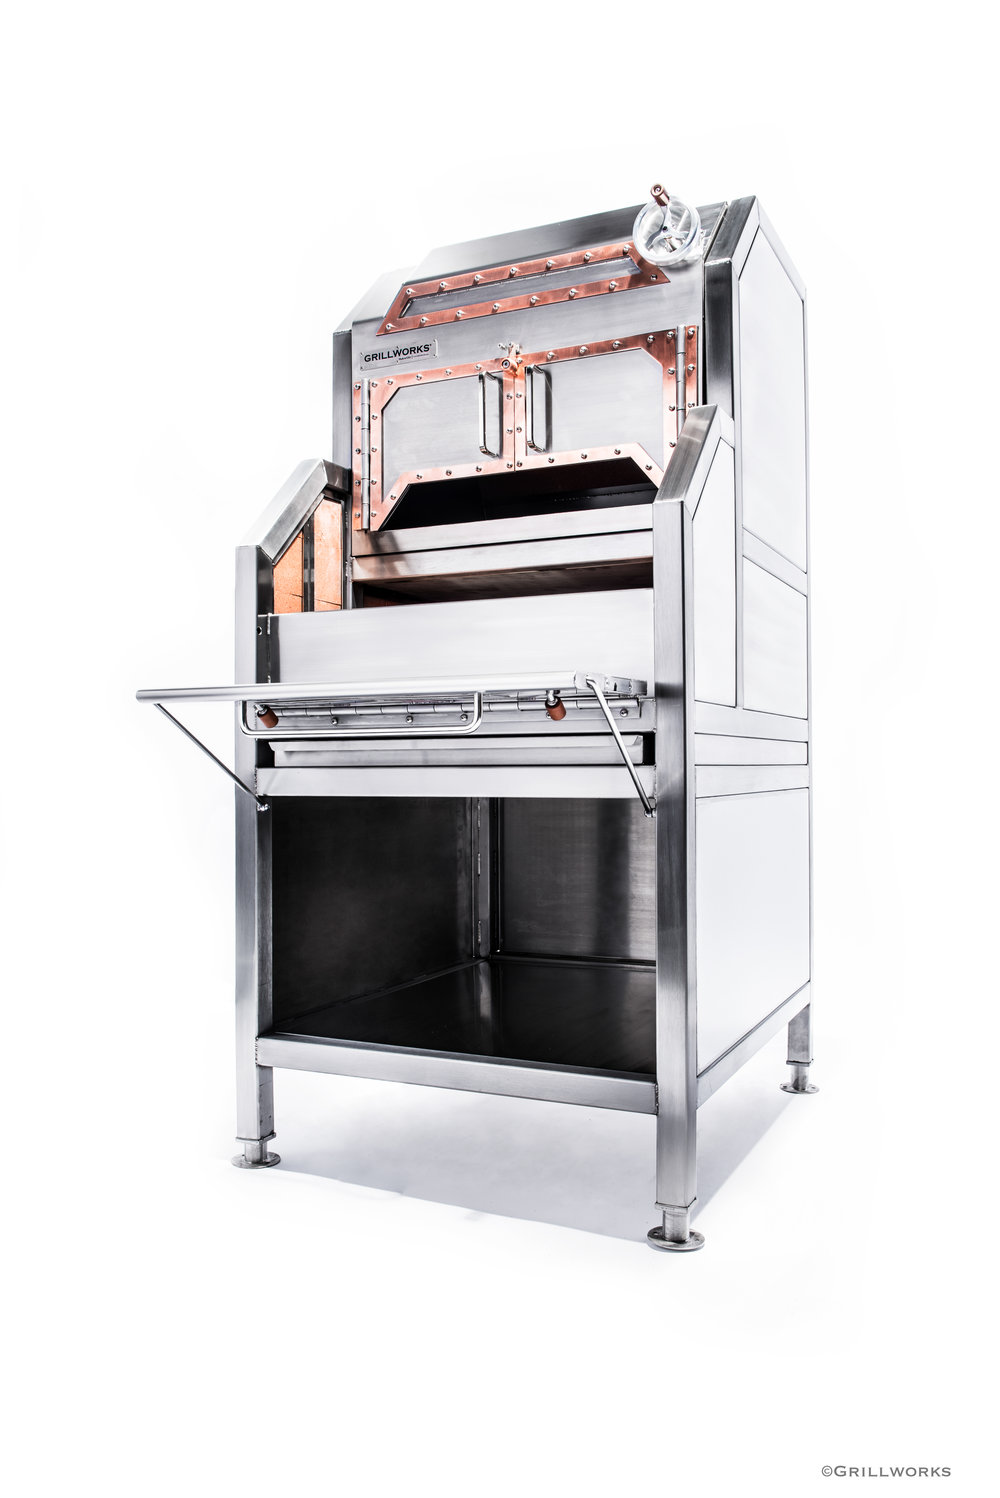 The Grillworks Blanco Oven, shown in freestanding configuration